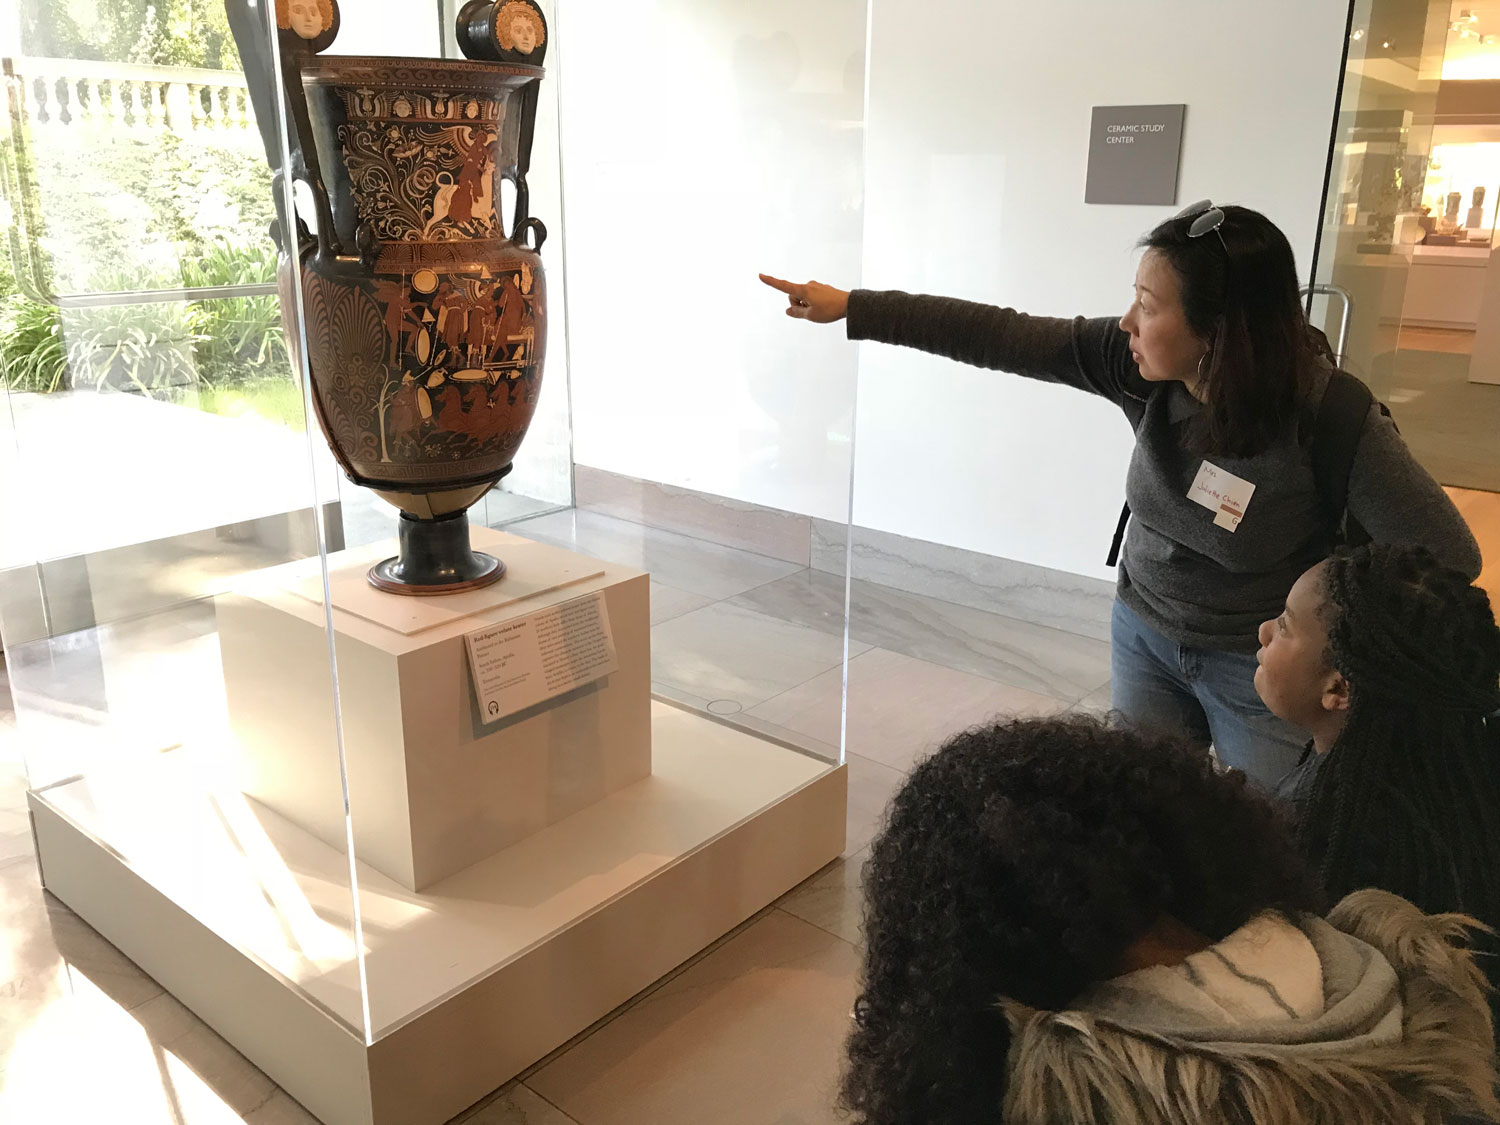 Ms. Chien brings history to life with the help of an ancient artifact at the Legion of Honor